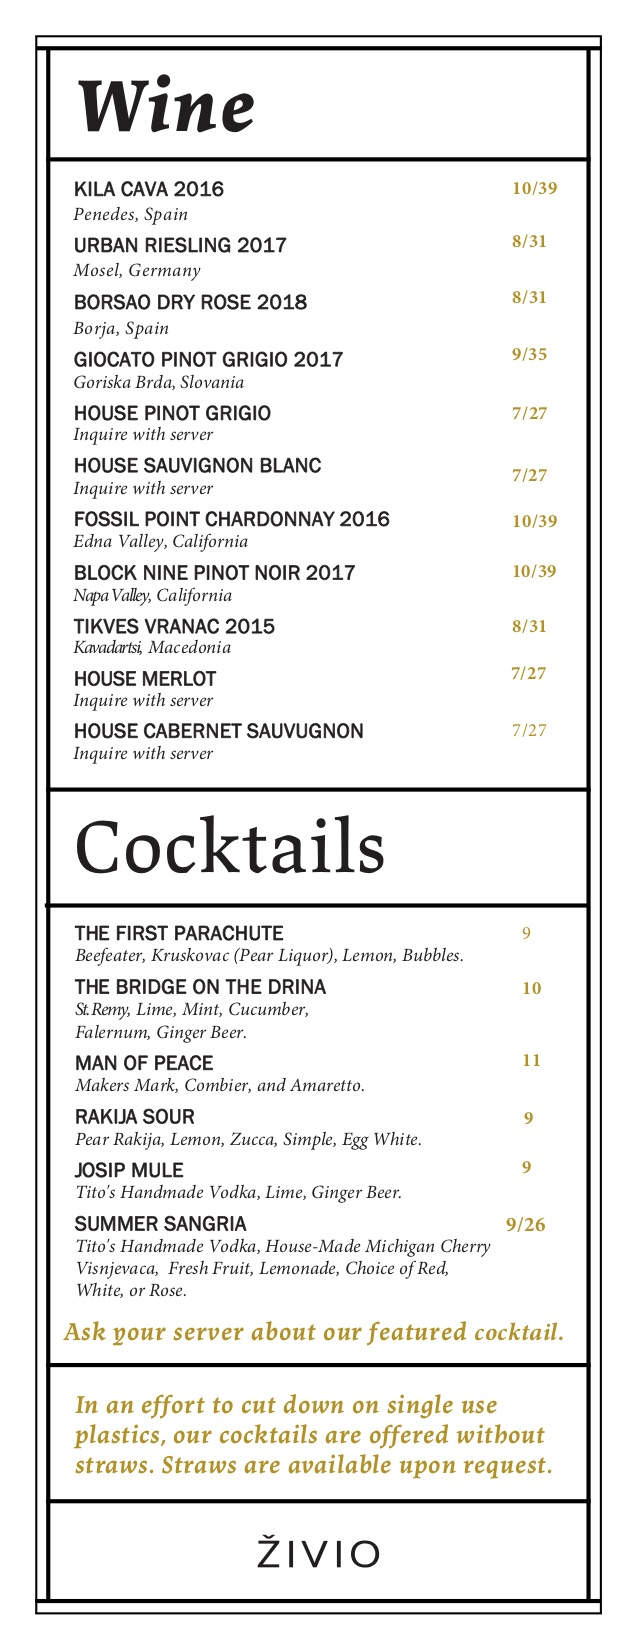 zivio drink menu update (3).jpg